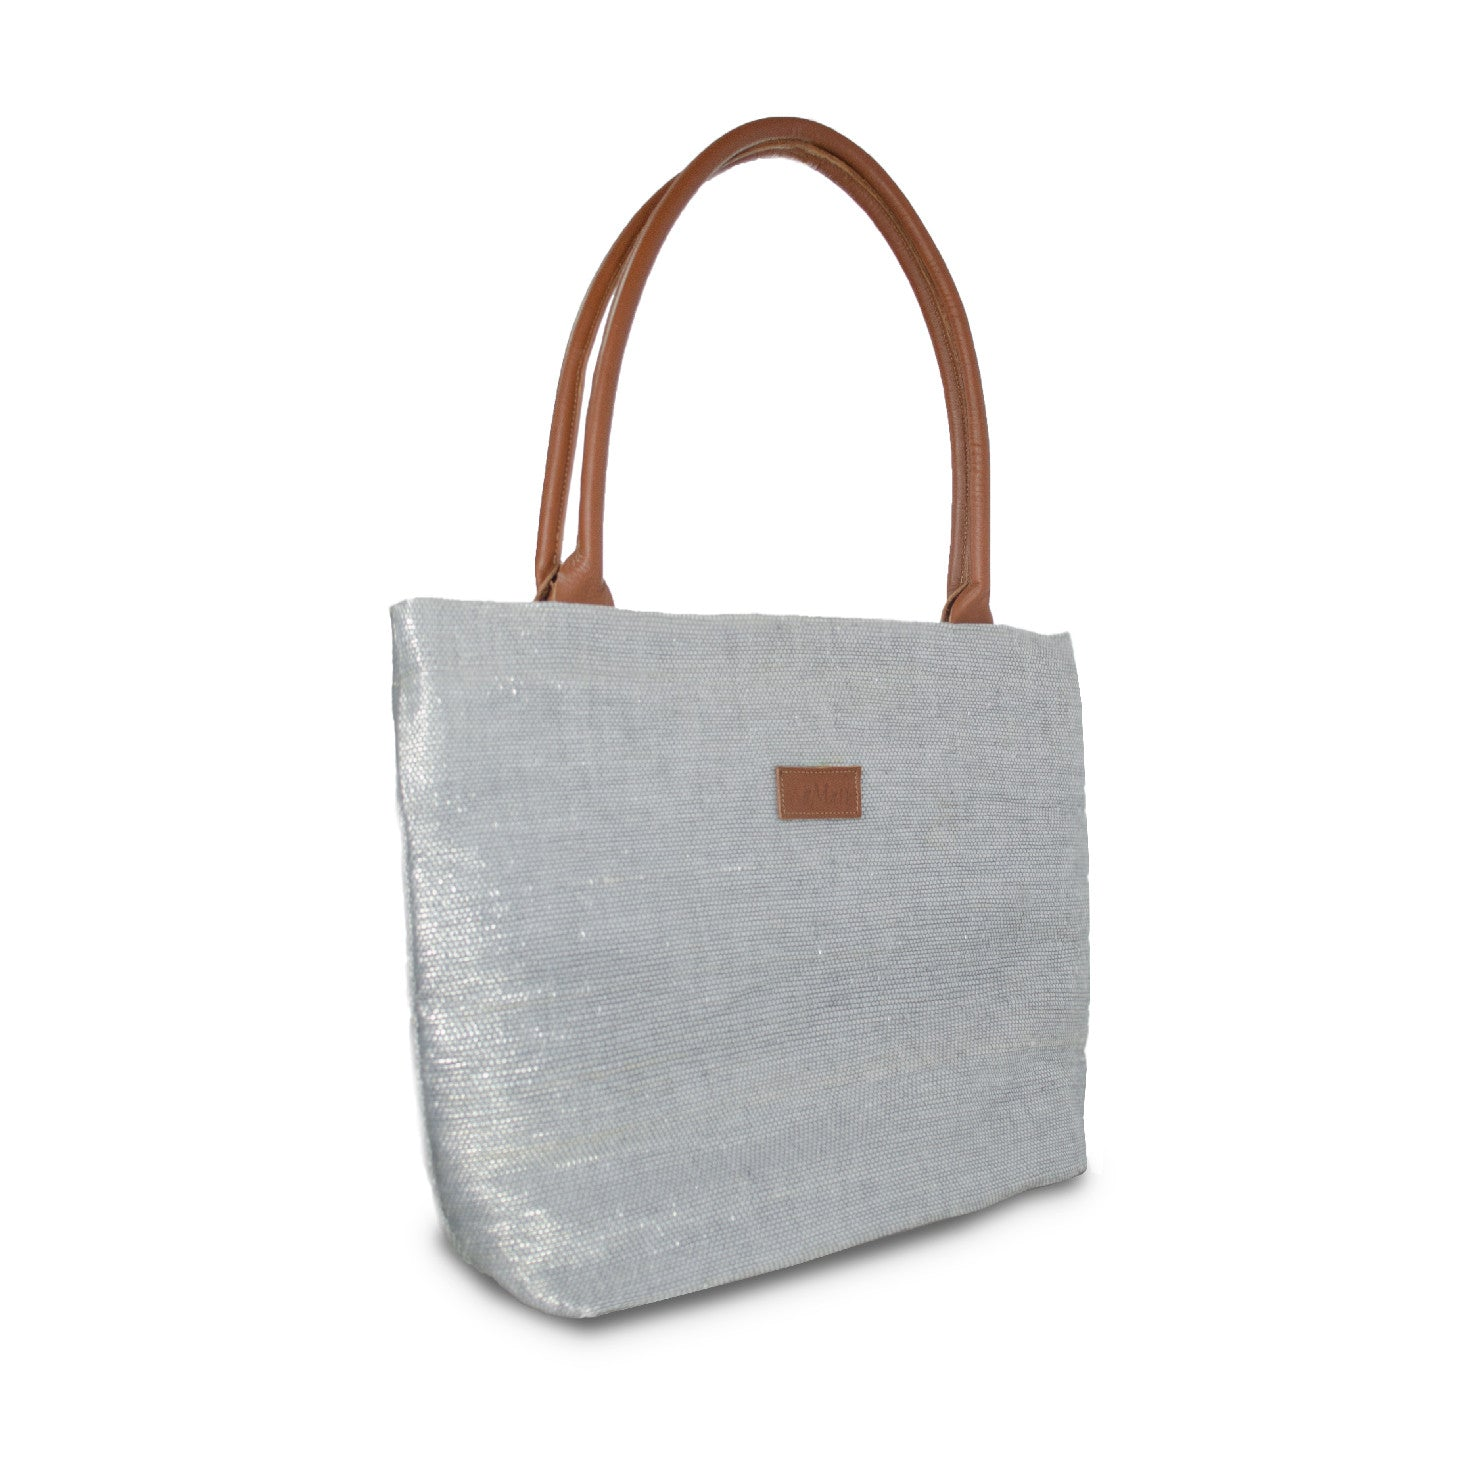 Tote Silver & Brown Leather